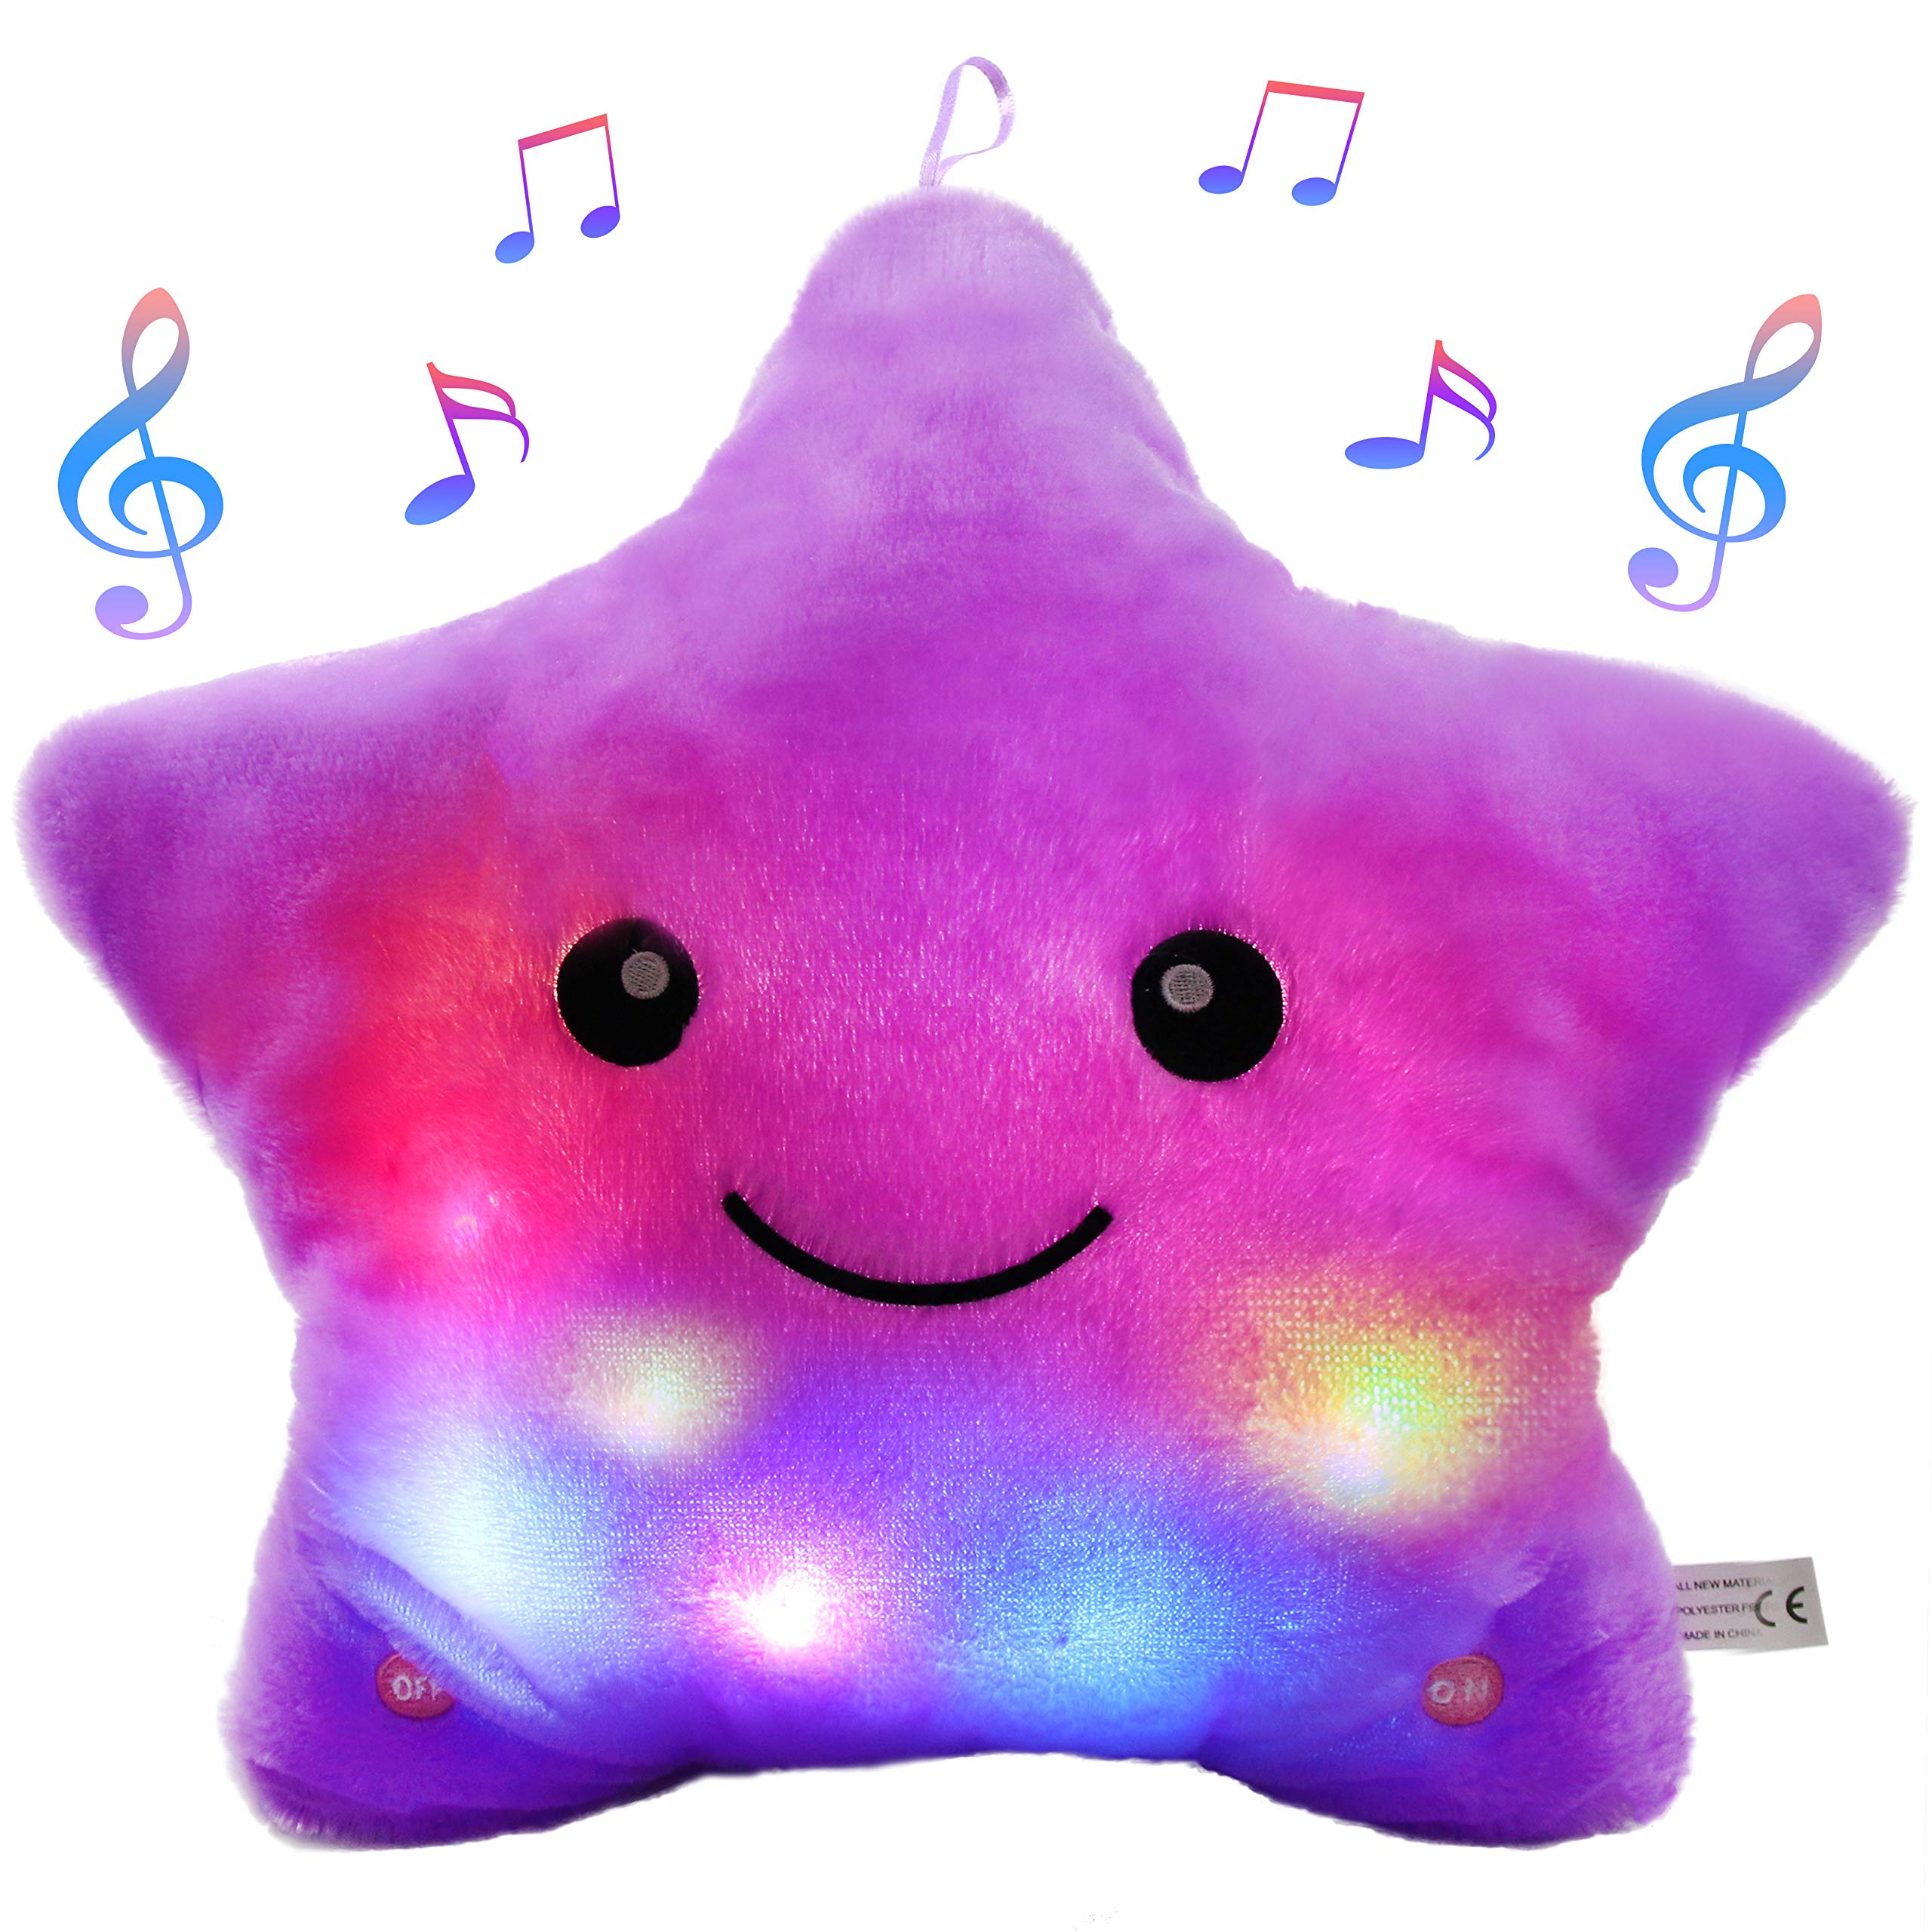 Bstaofy LED Musical Twinkle Star Glow Lullaby Nightlight Stuffed Toys Animated Afraid of Dark Singing Gift for Toddlers, Purple by Bstaofy